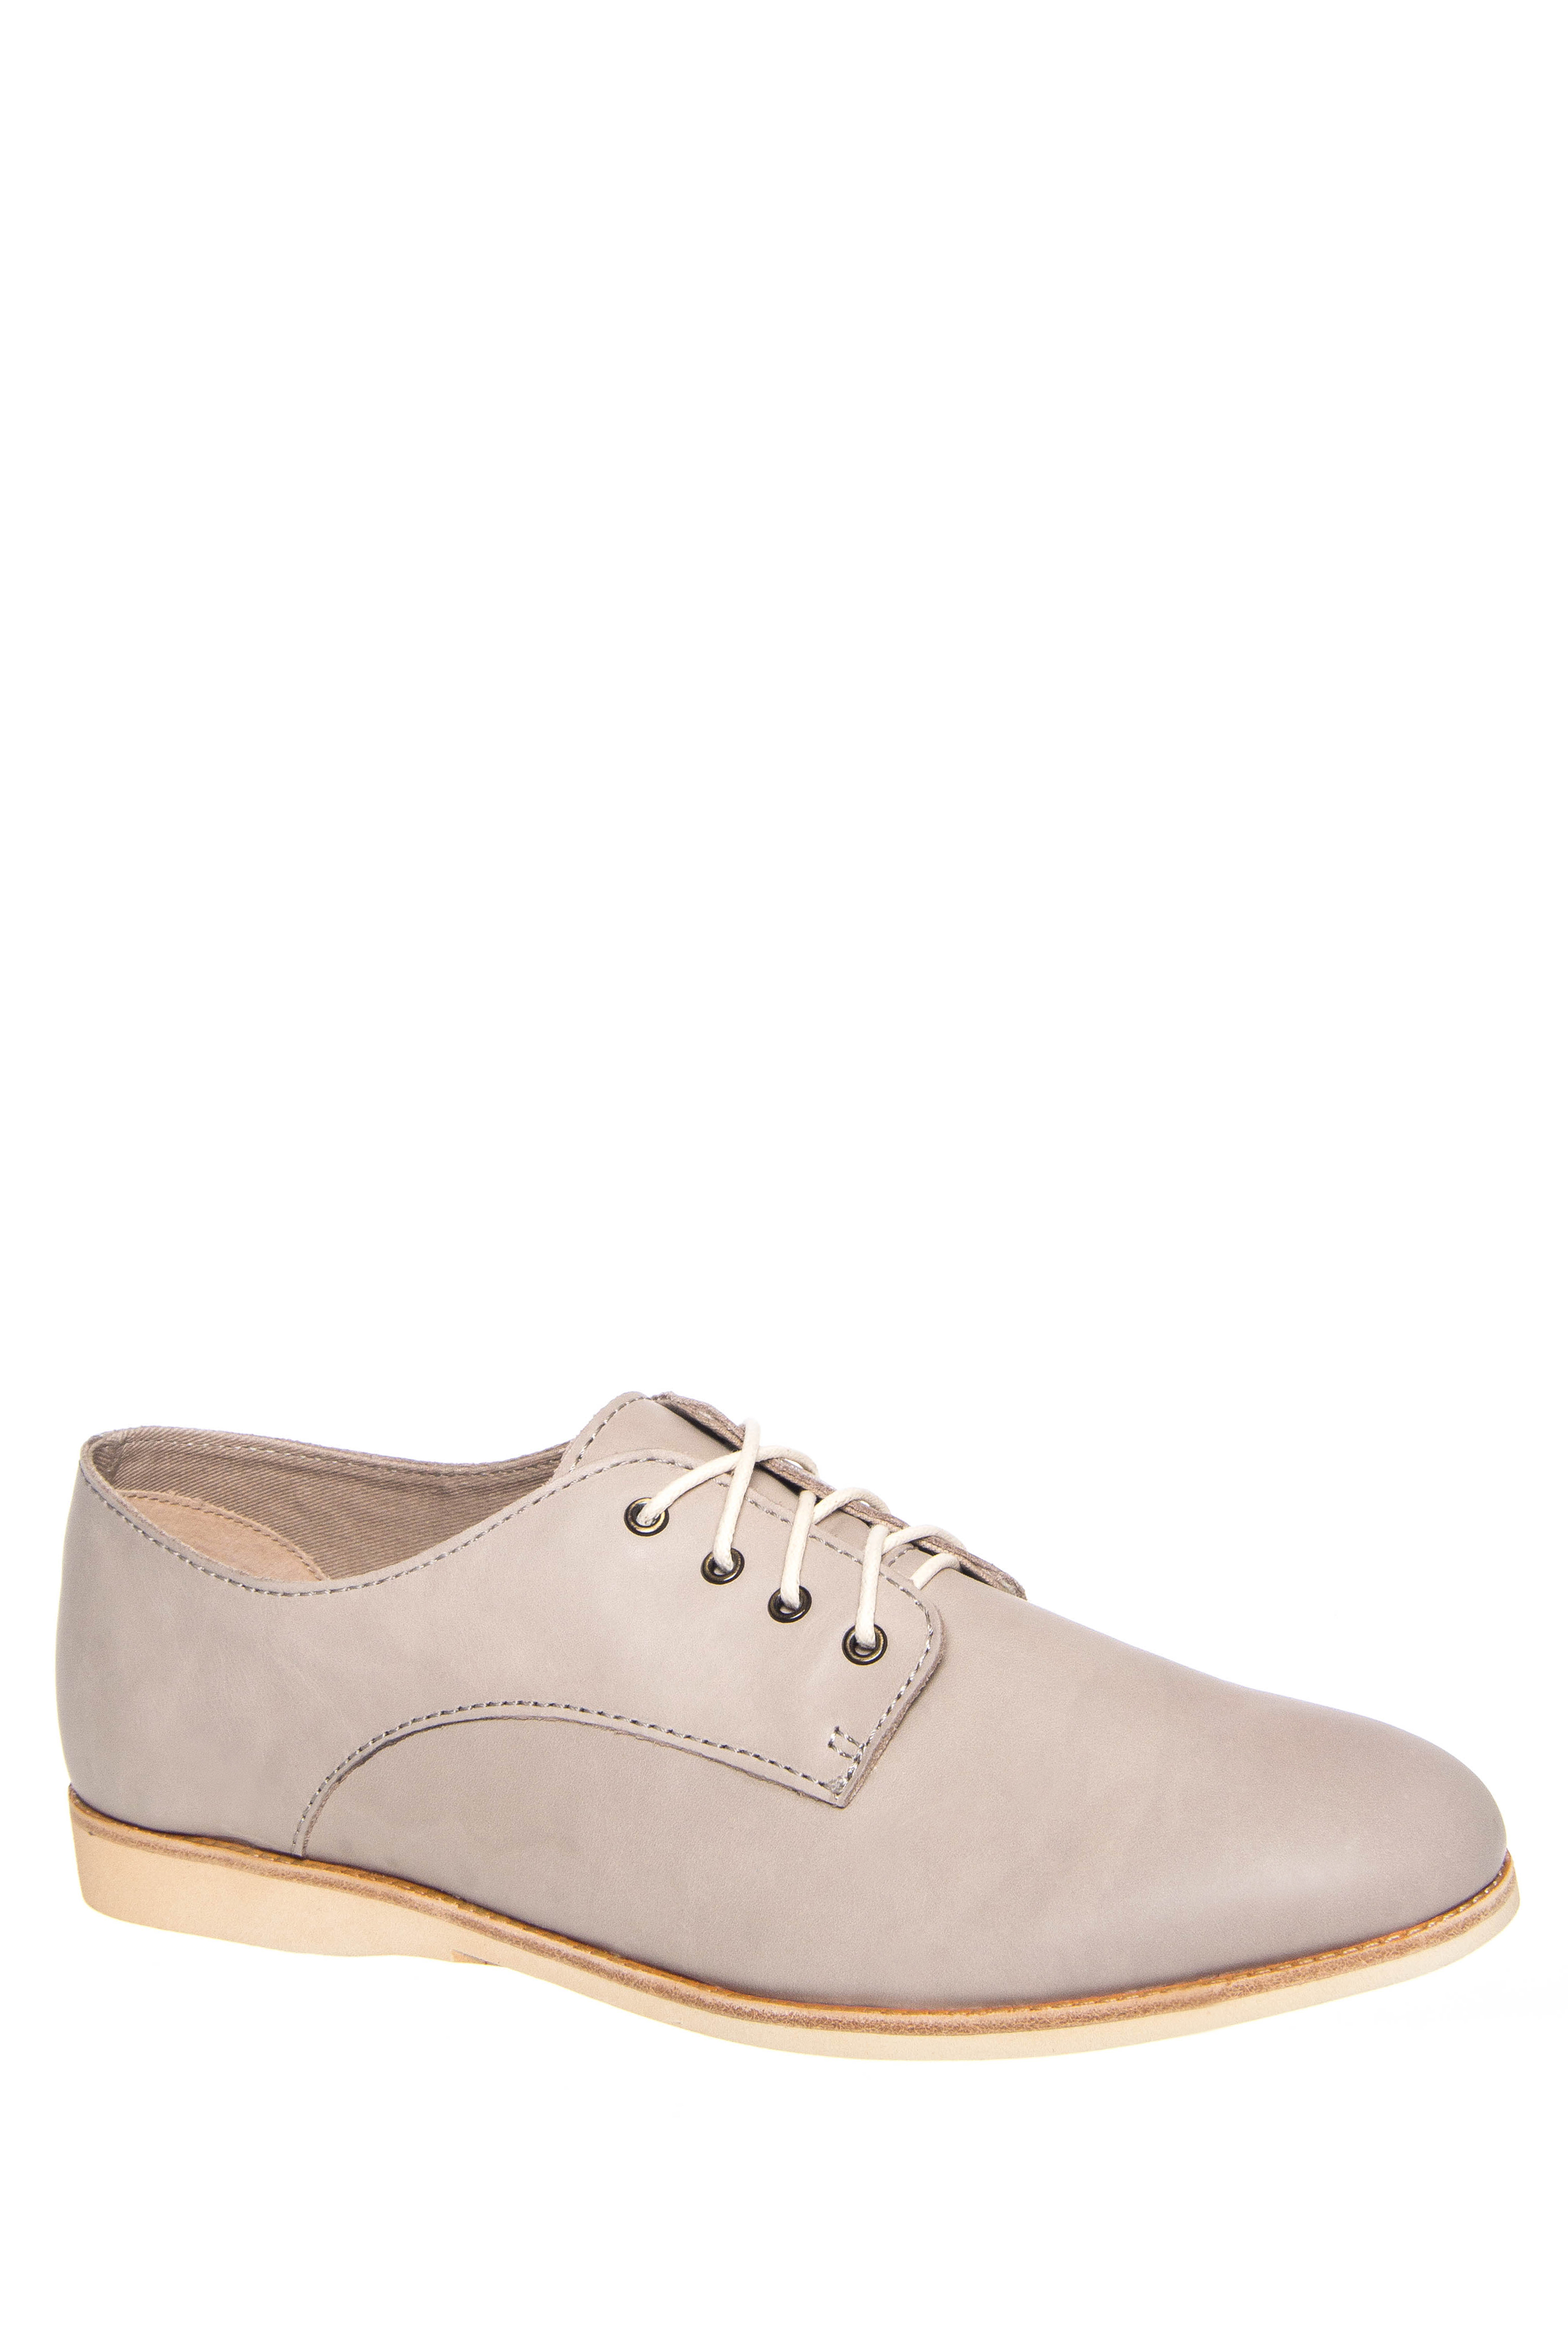 Rollie Nation Unisex Derby Low Heel Oxford